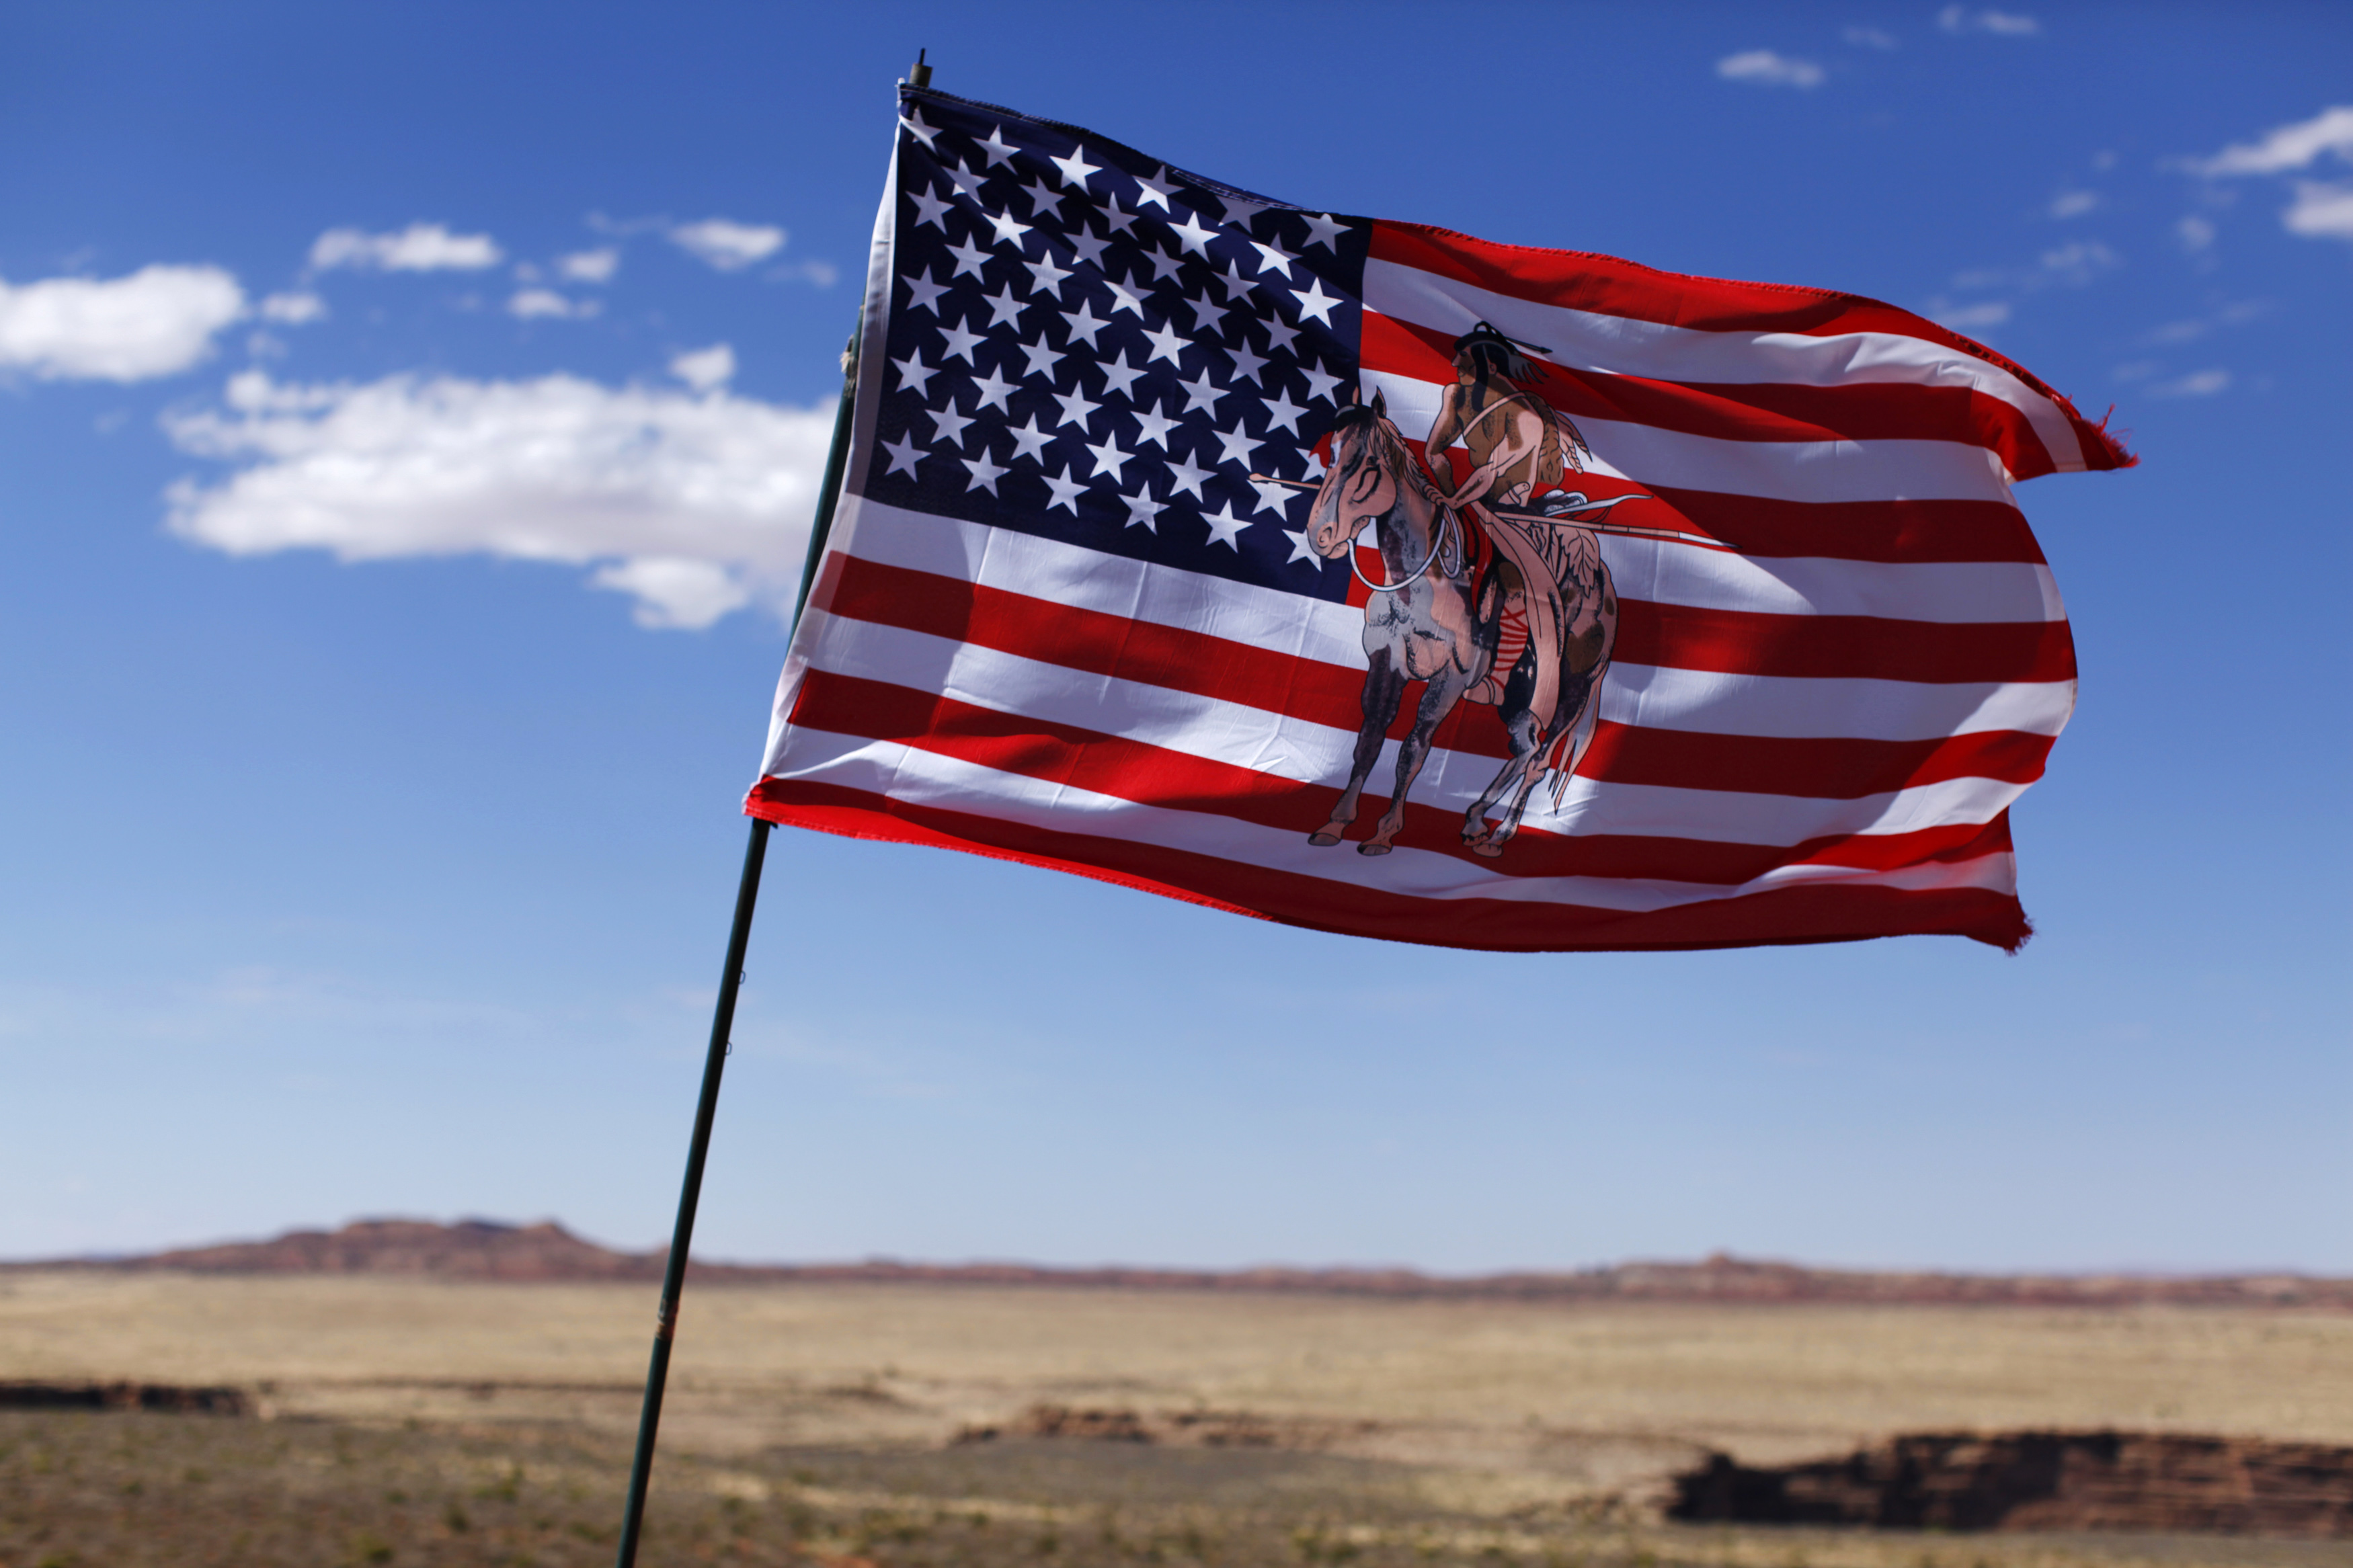 A U.S. flag with an image of an American Indian horse rider flies next to a roadside jewellery stand on the Navajo Reservation, by a remote section of the Grand Canyon near Little Colorado River, Ariz., June 23, 2013.